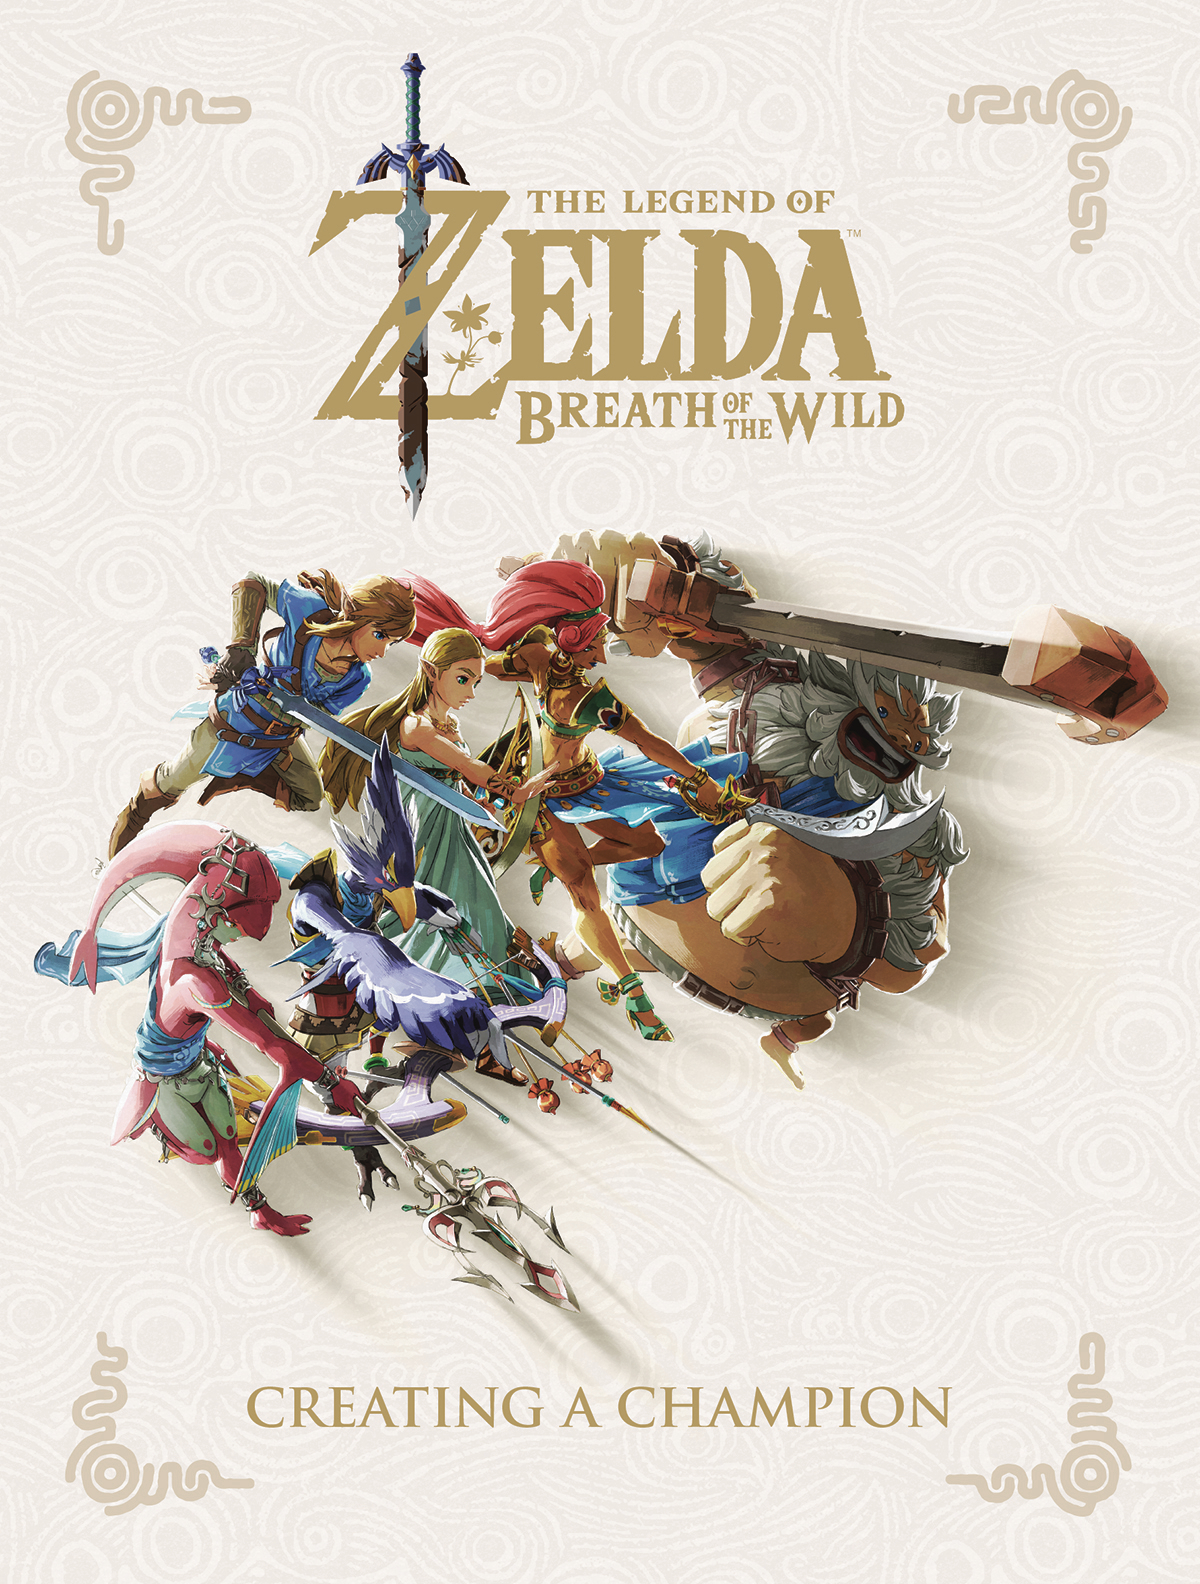 LEGEND OF ZELDA BREATH WILD CREATING A CHAMPION HC (JUL18042